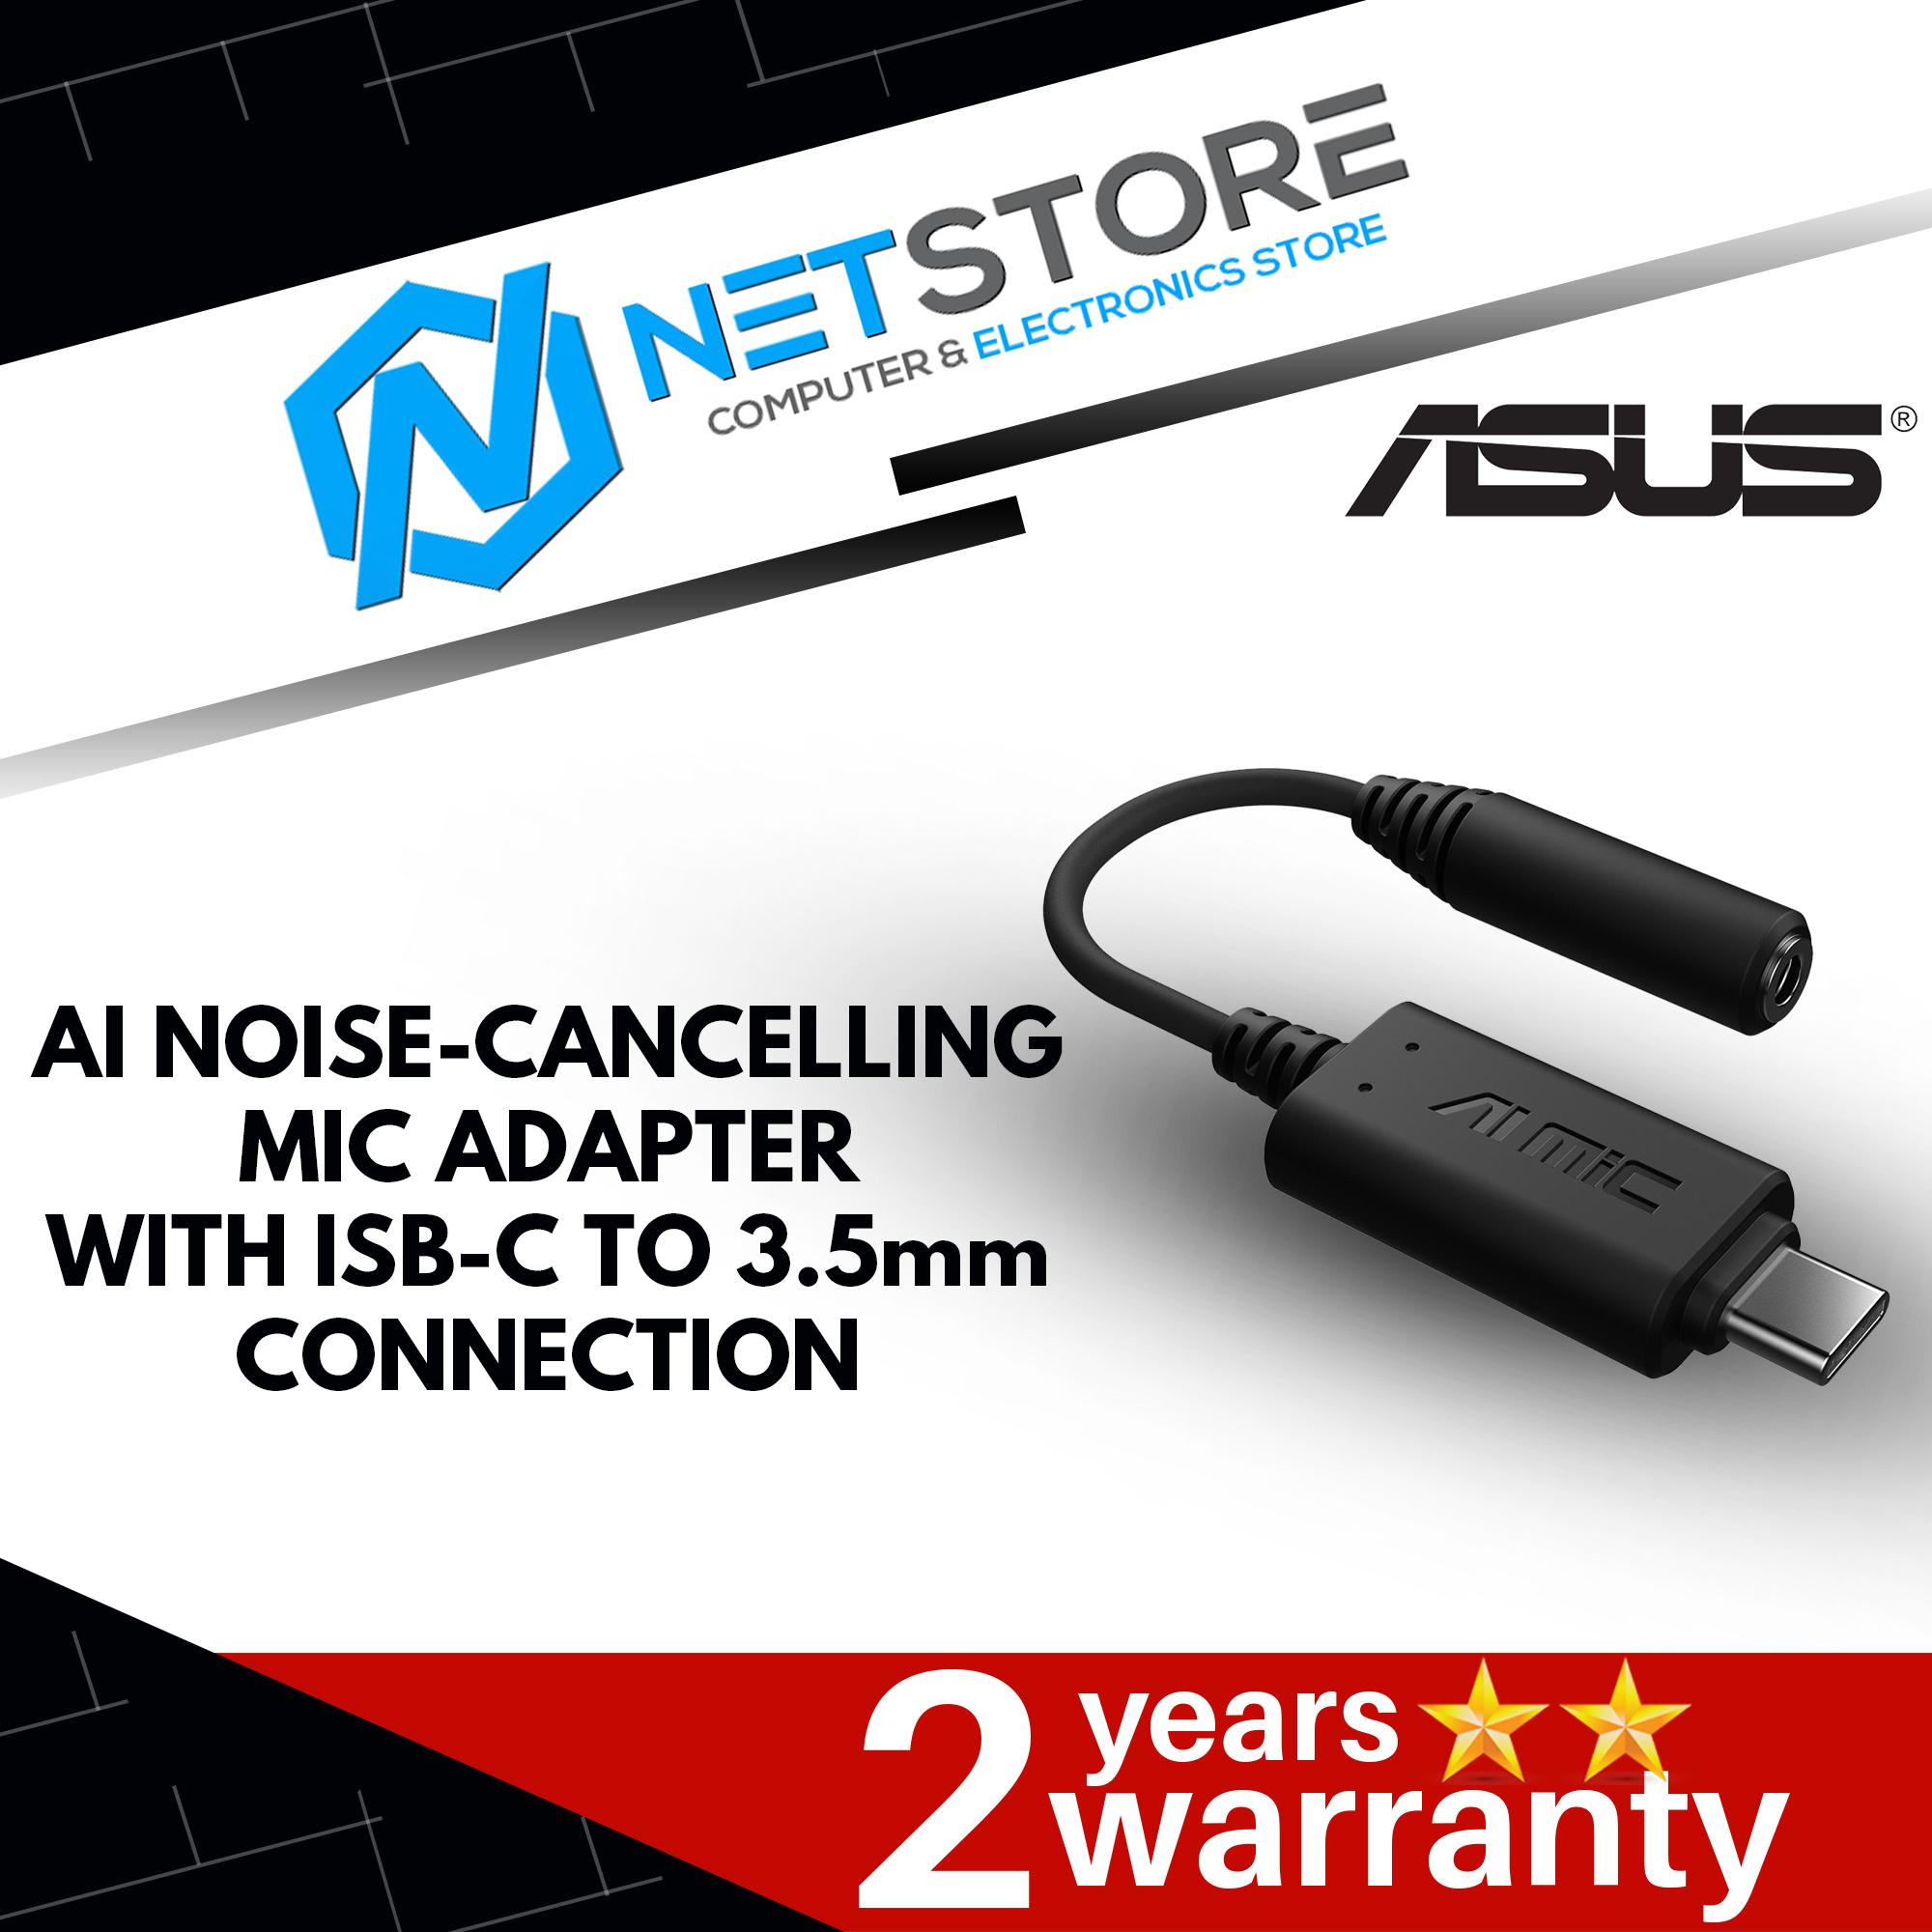 ASUS AI NOISE-CANCELLING MIC ADAPTER WITH USB-C TO 3.5mm CONNECTION